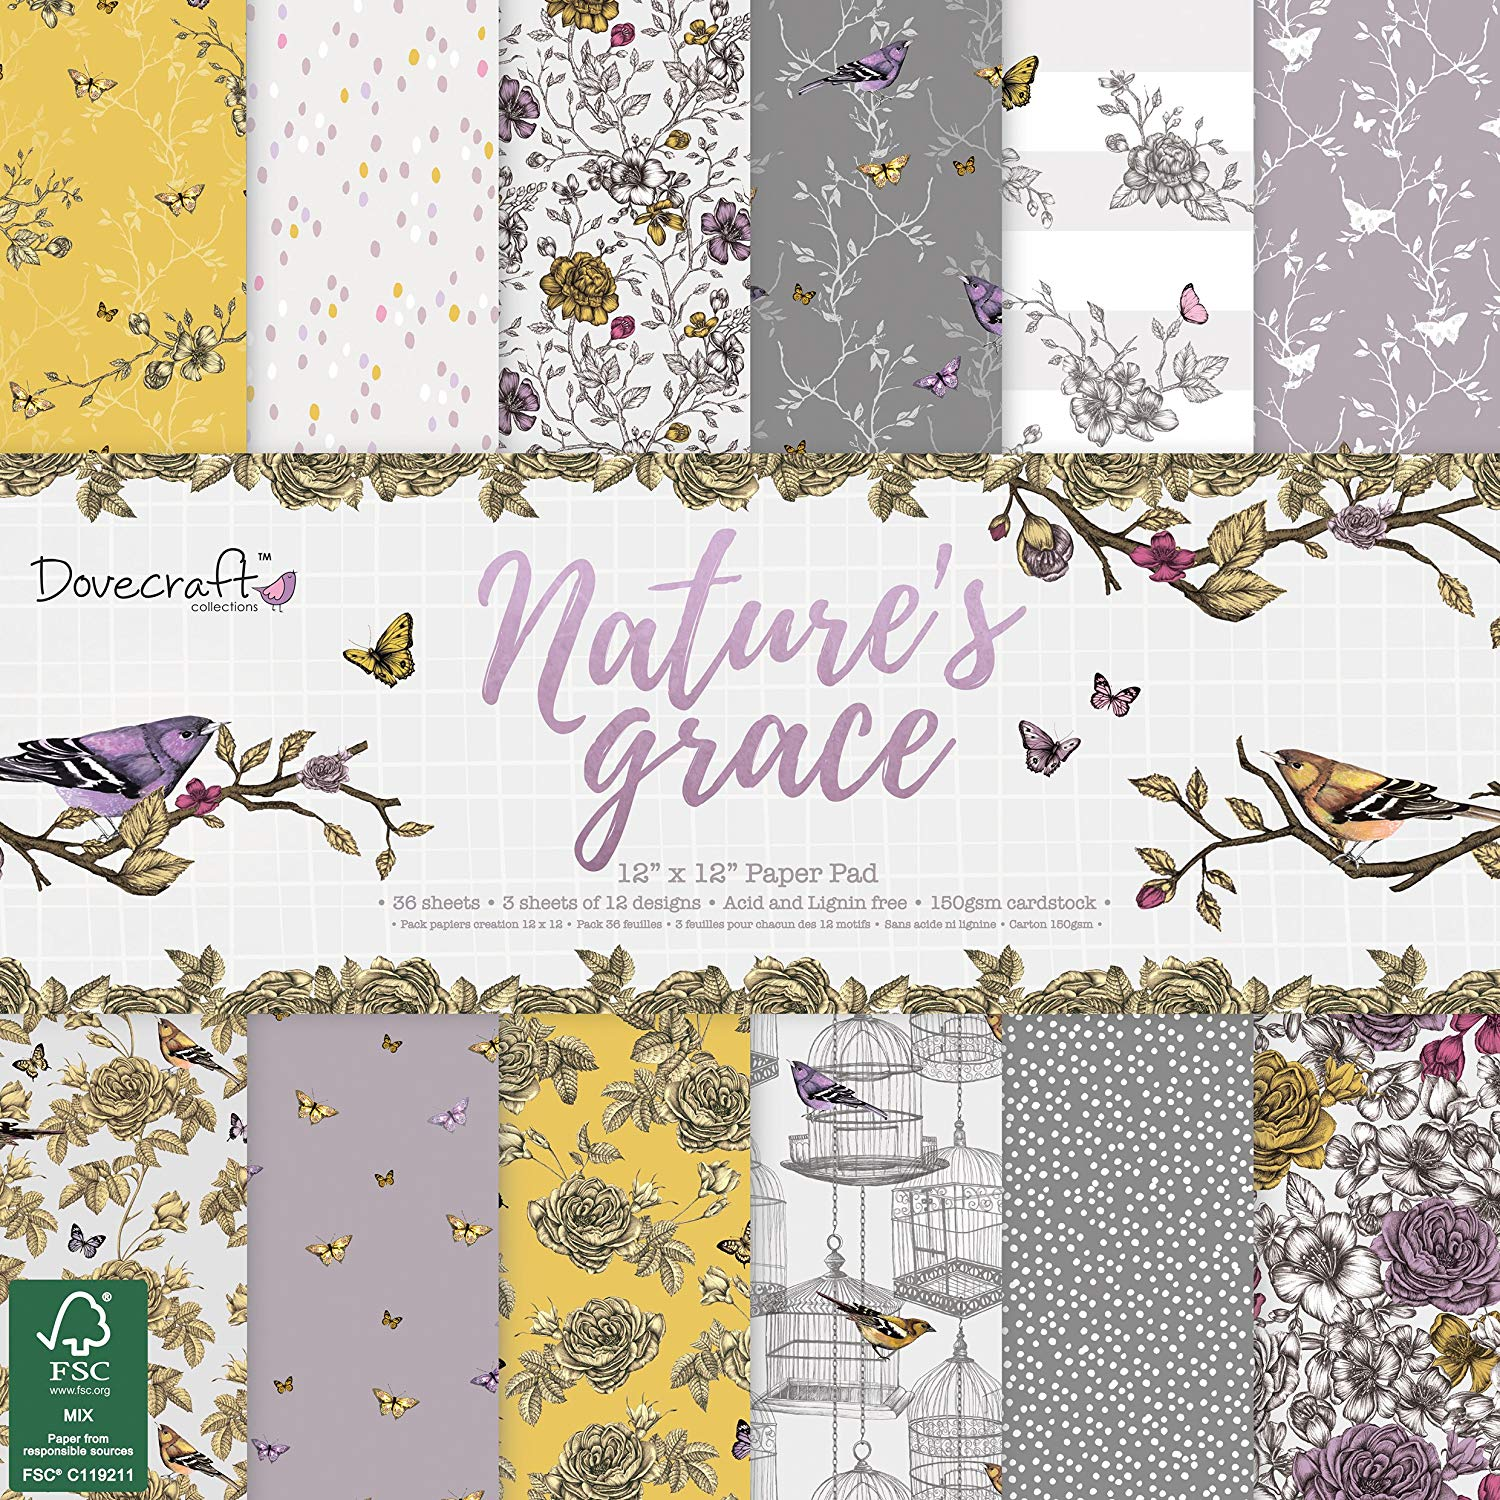 Dovecraft Premium Nature's Grace Paper Craft Collection - FSC 12x12 Paper Pack